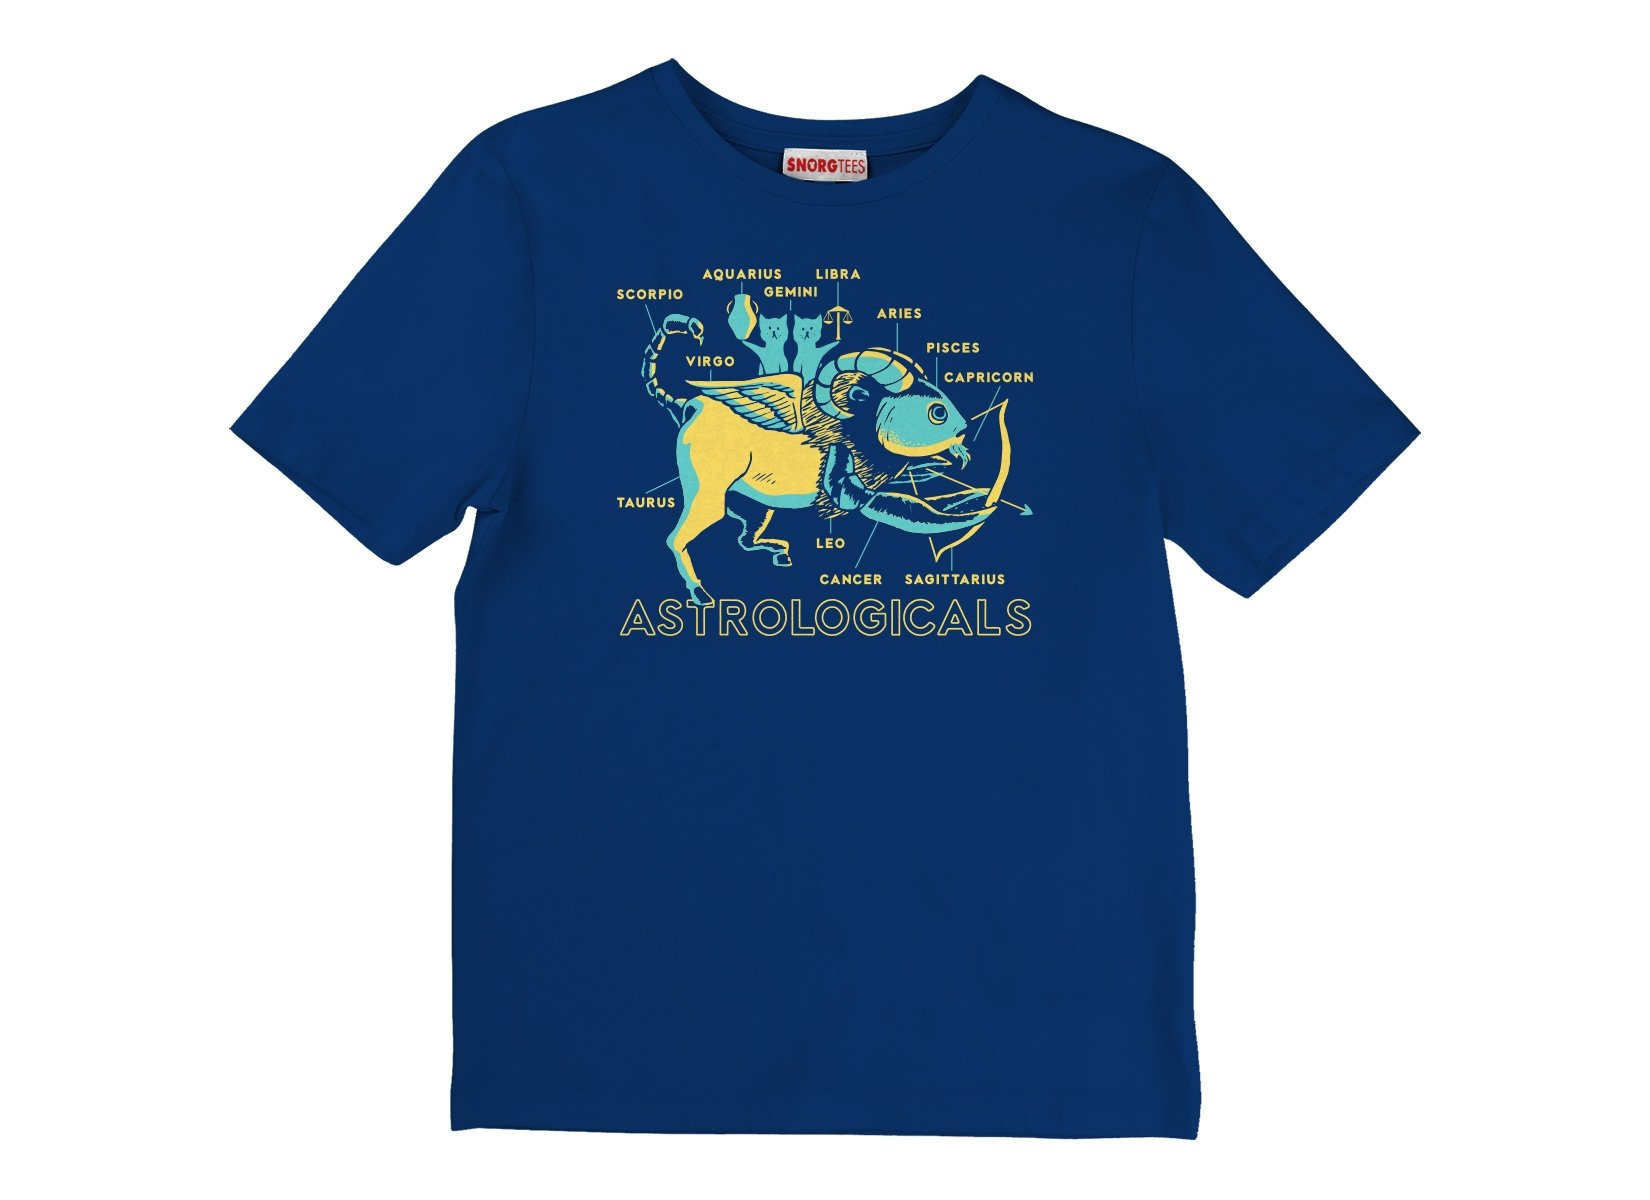 Astrologicals on Kids T-Shirt